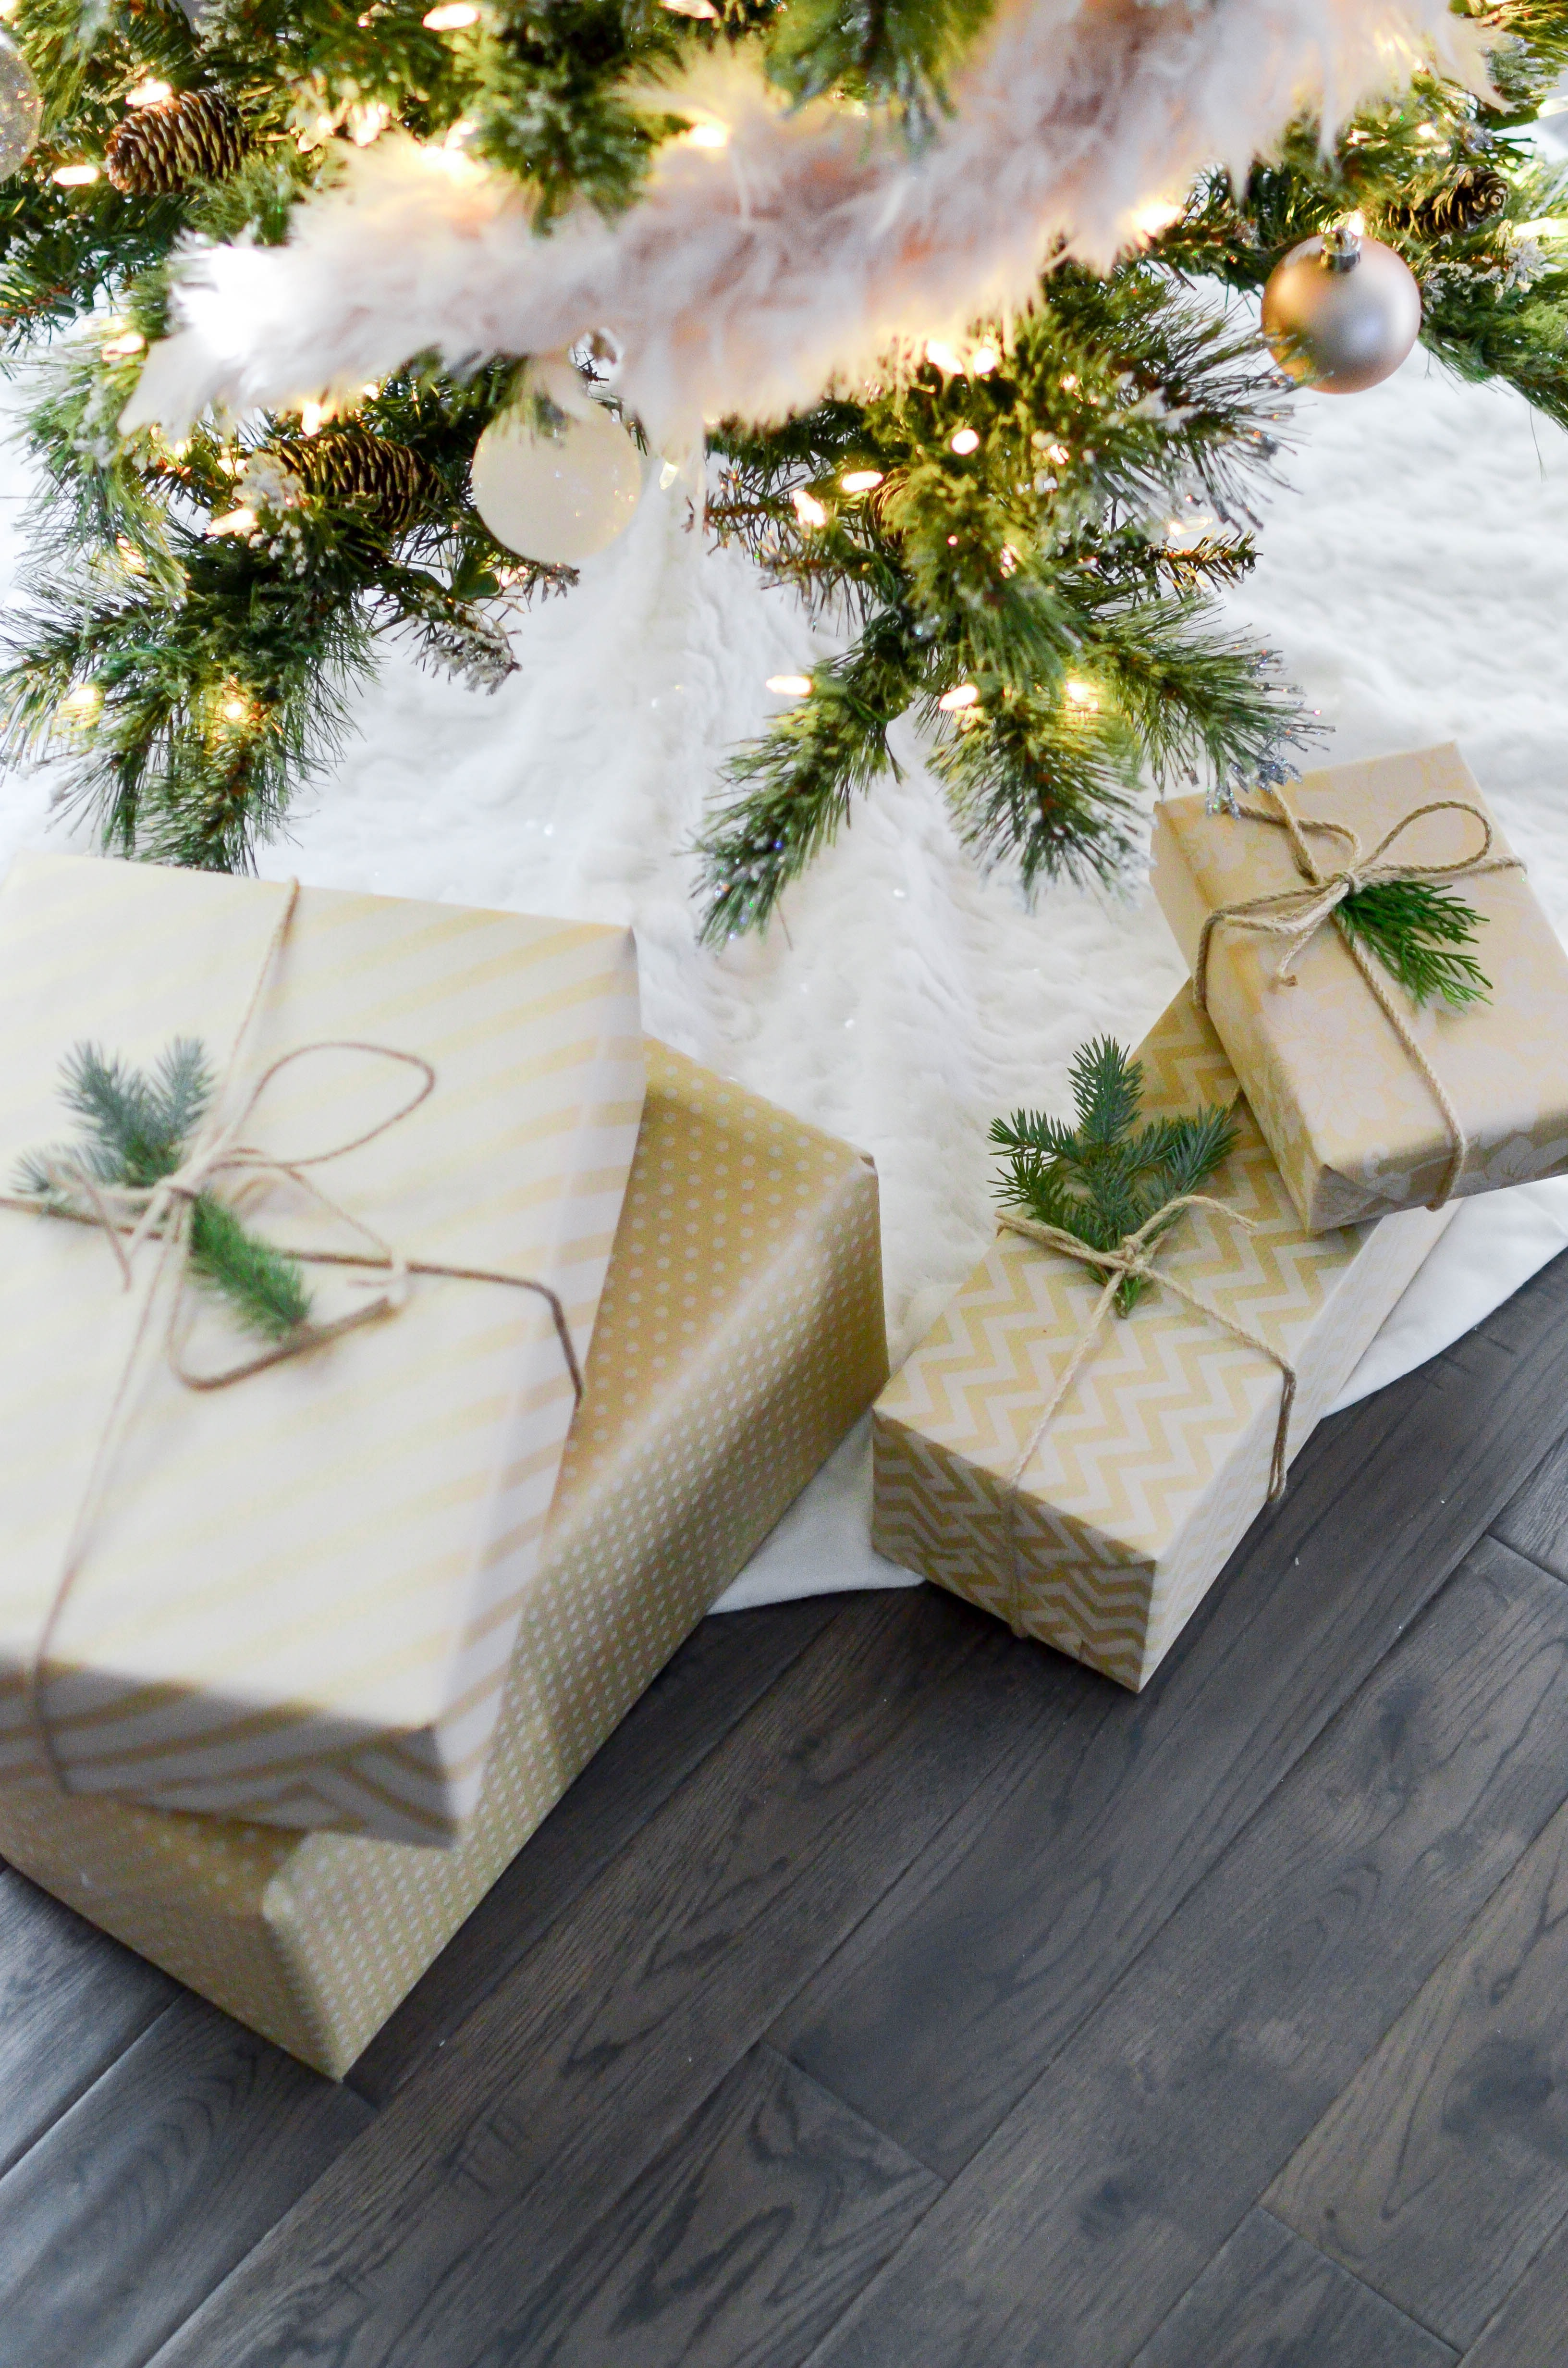 four gift boxes under Christmas tree